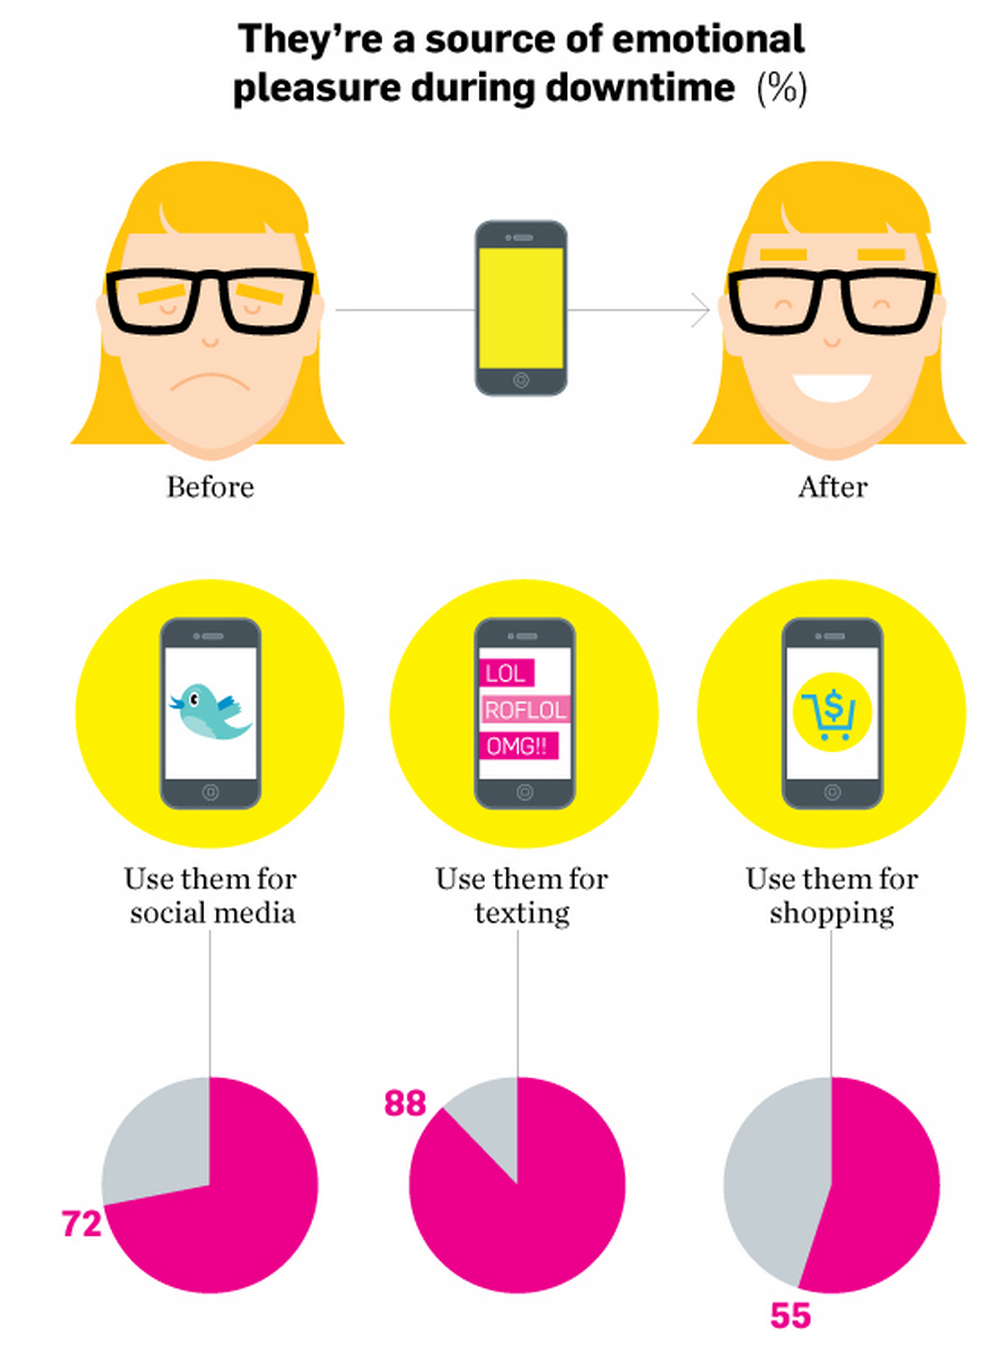 Women + Mobile: The unbreakable bond by Time Inc. and Nuance Digital Marketing